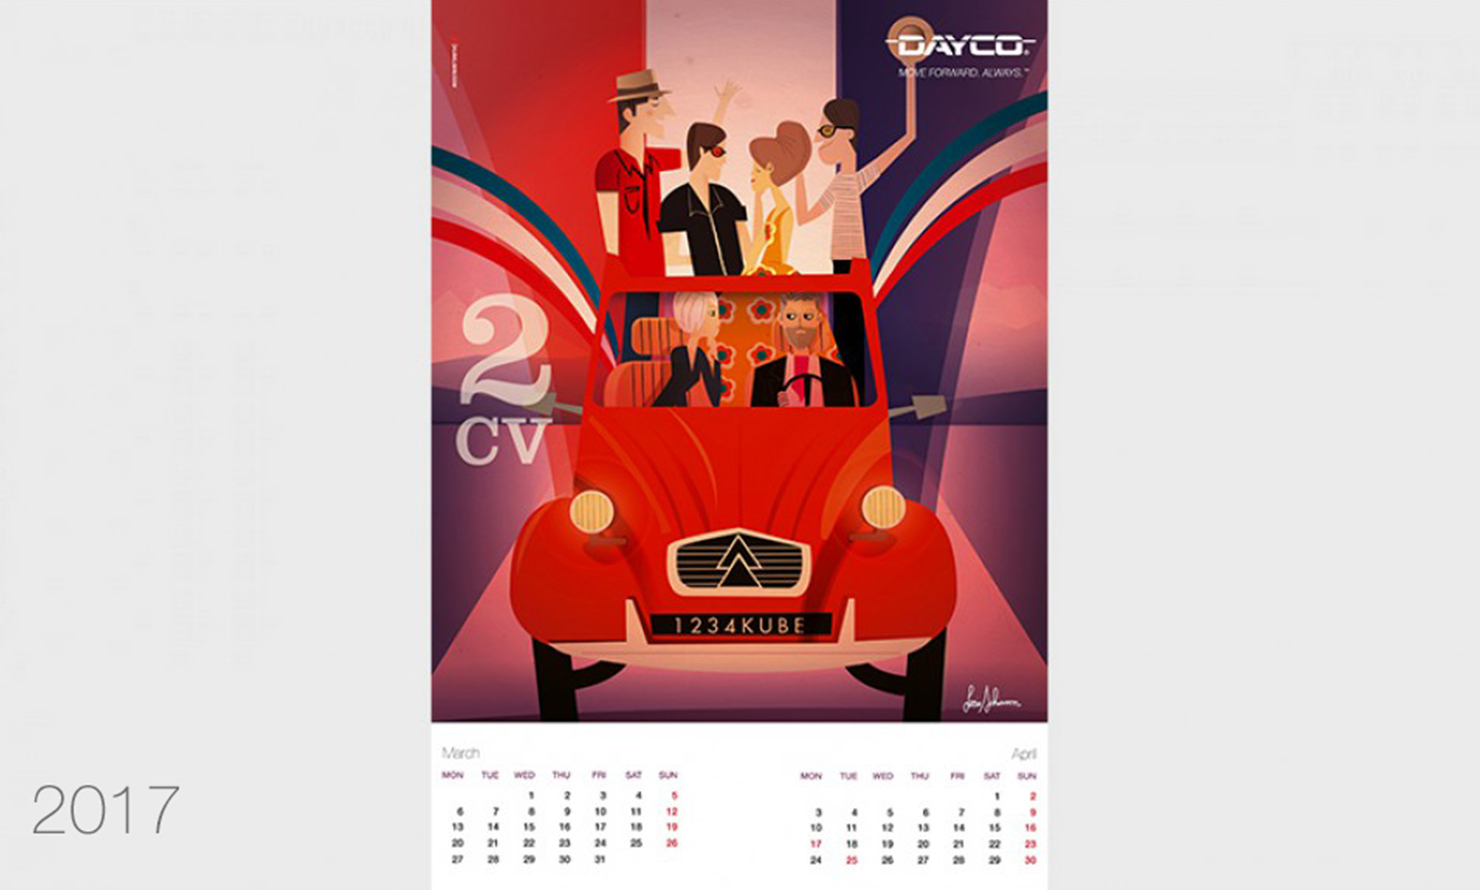 https://kubelibre.com/uploads/Slider-work-tutti-clienti/dayco-calendario-2017-2.jpg